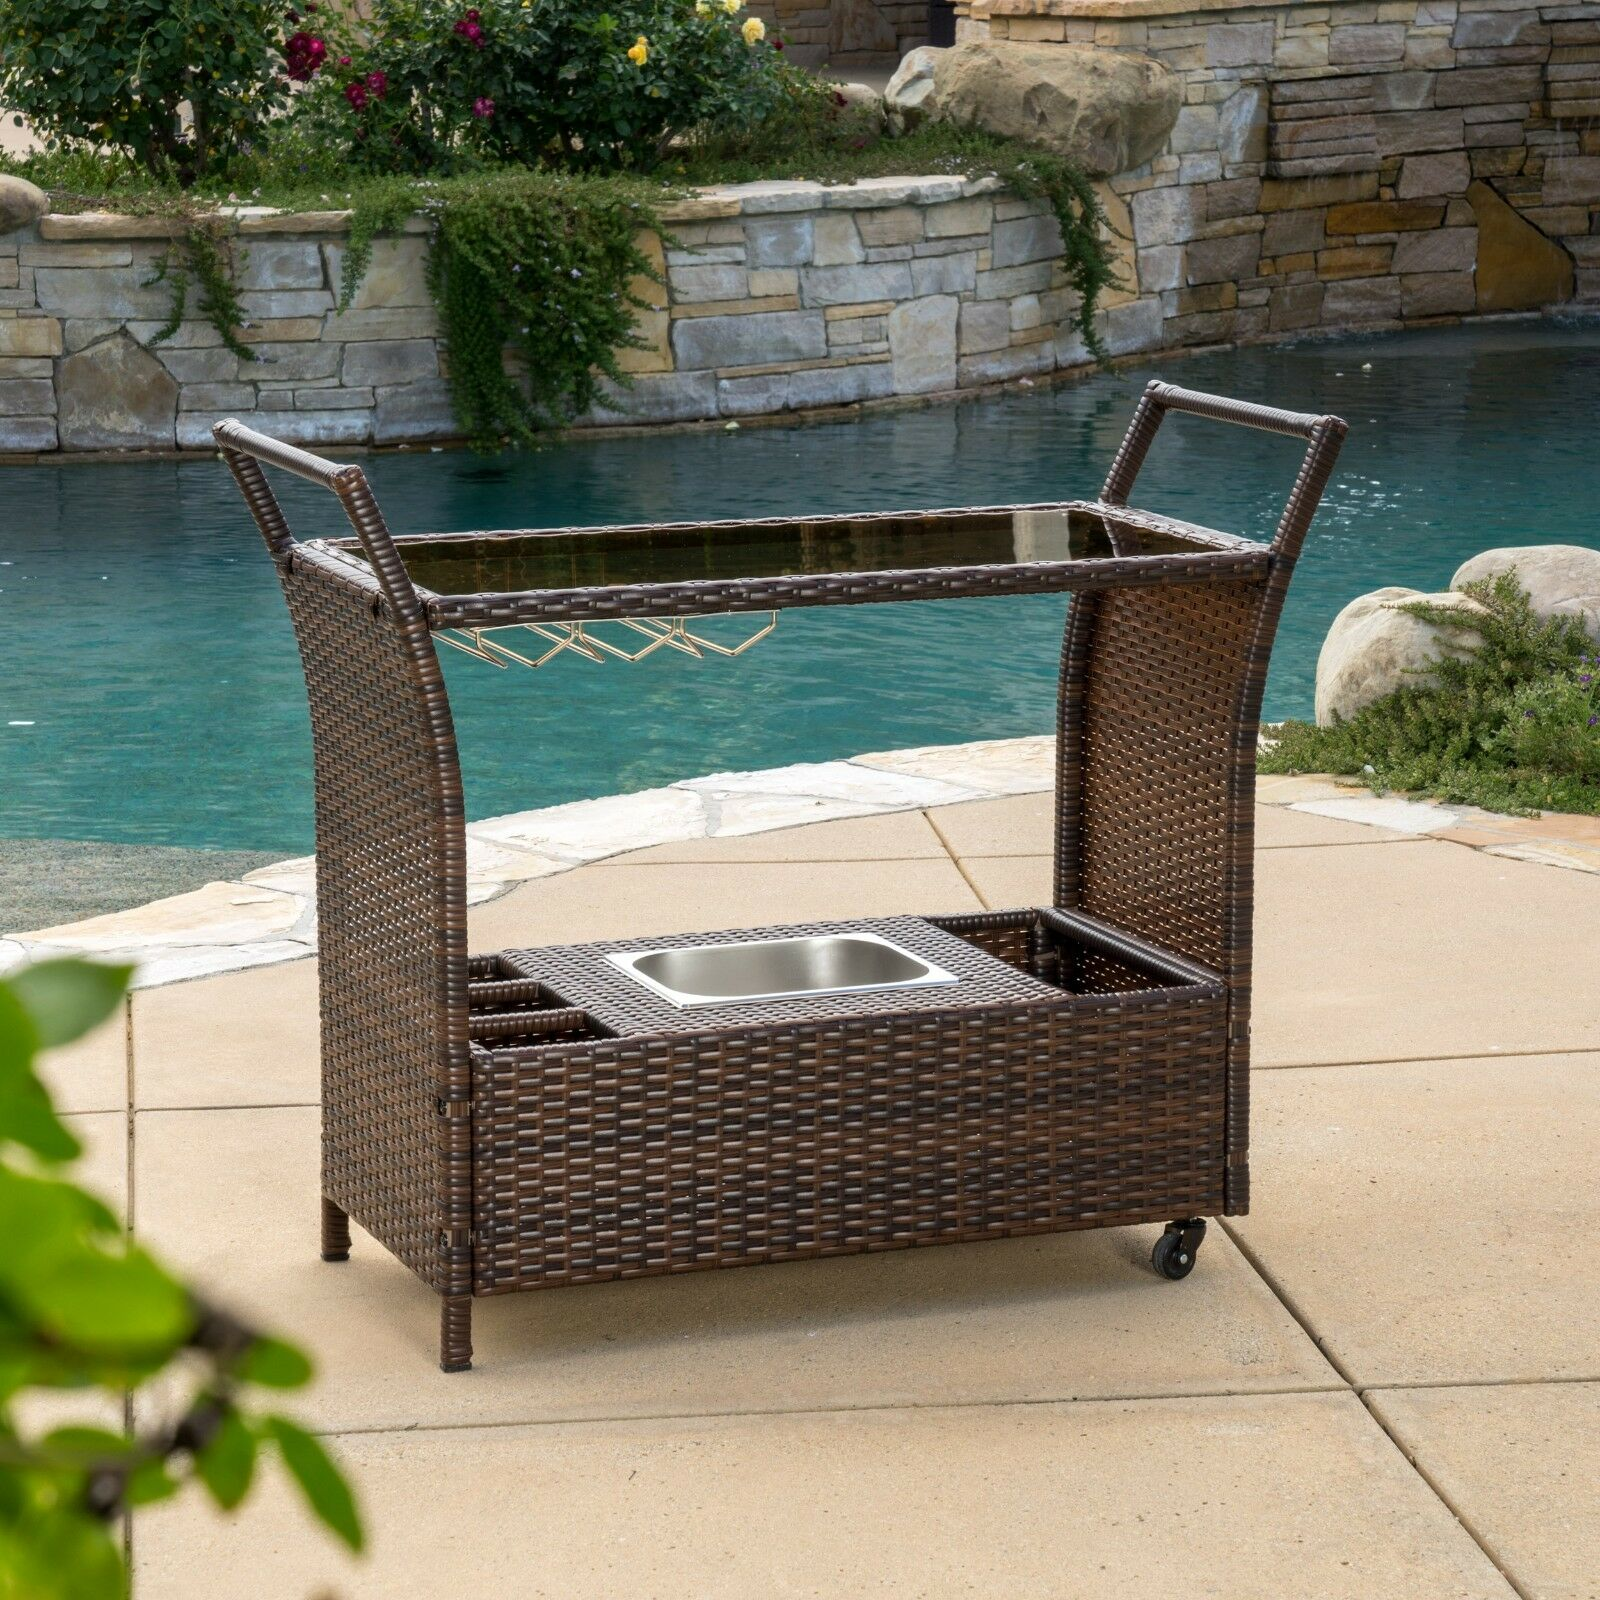 Outdoor Bar Cart Rolling Serving Wicker Portable Beverage Patio